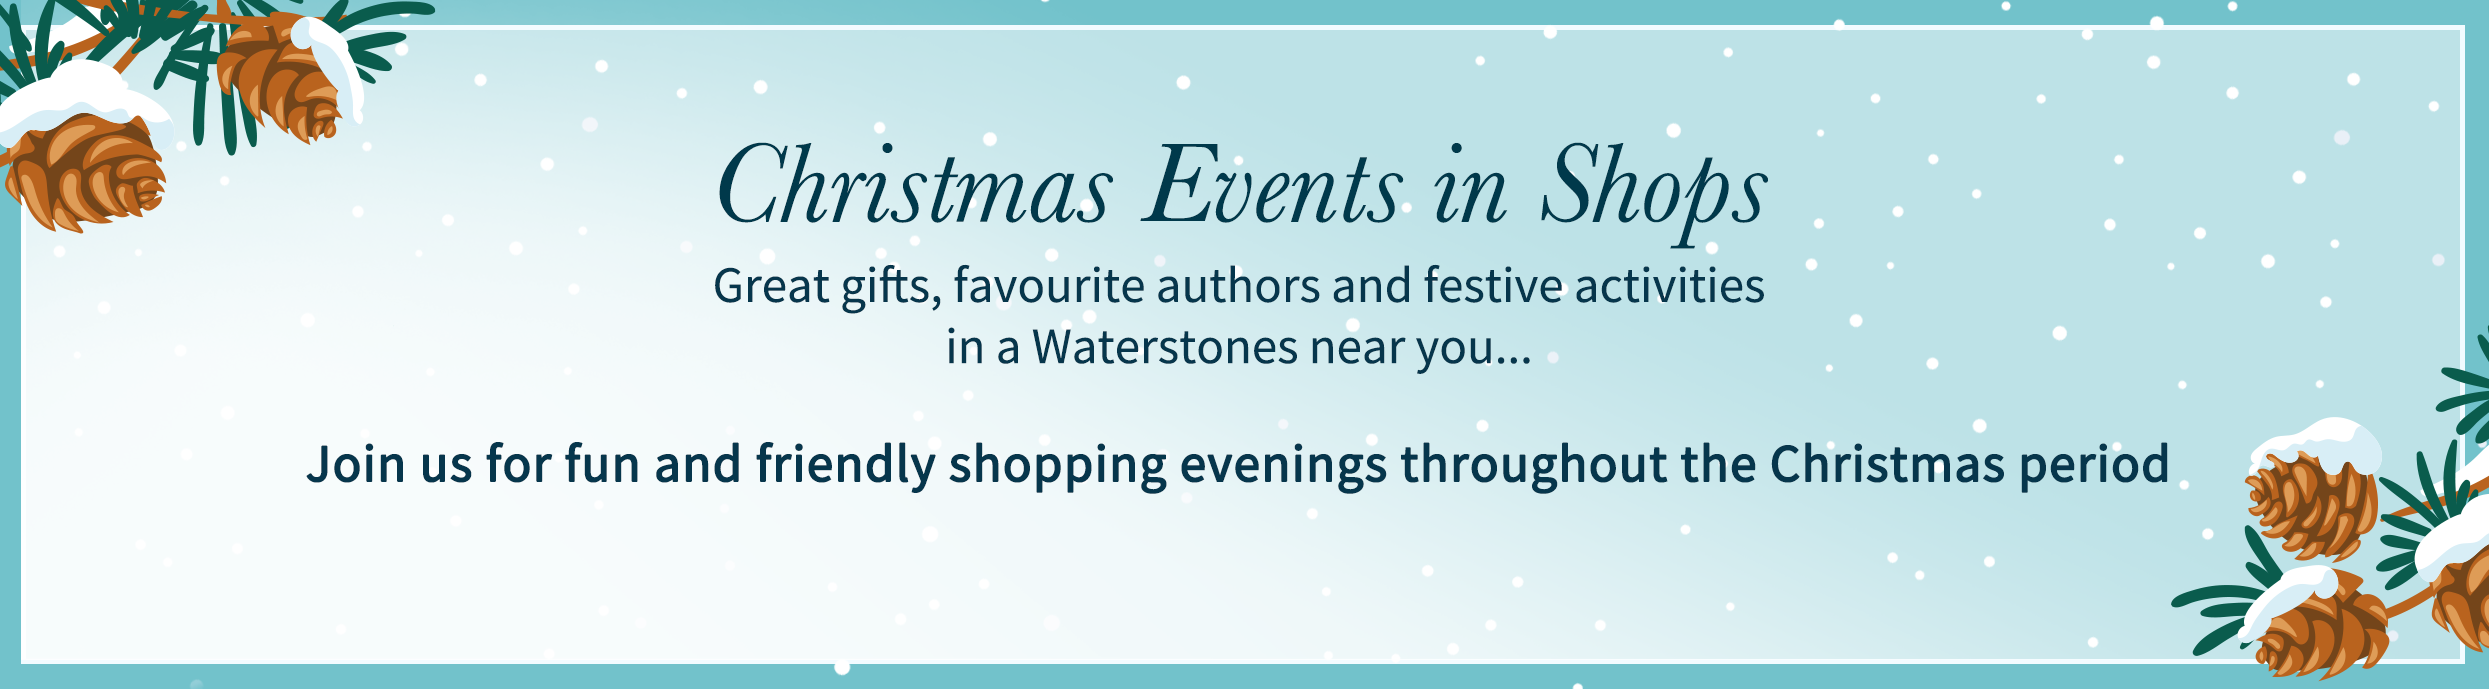 Christmas Evenings at Waterstones